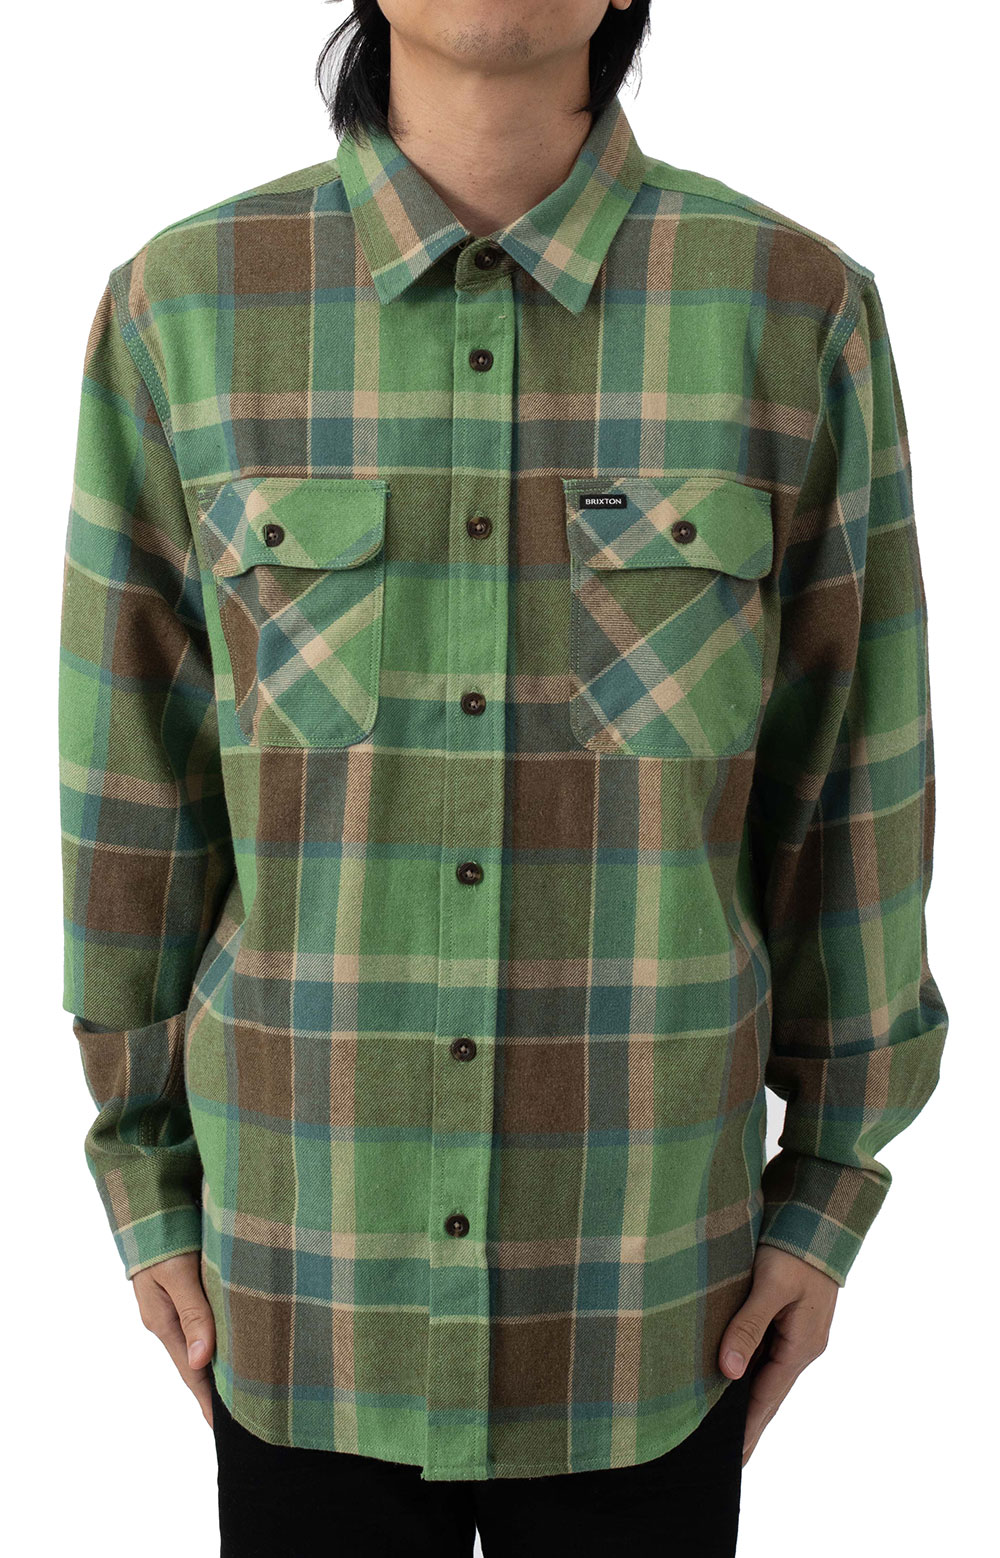 Bowery L/S Flannel - Toffee